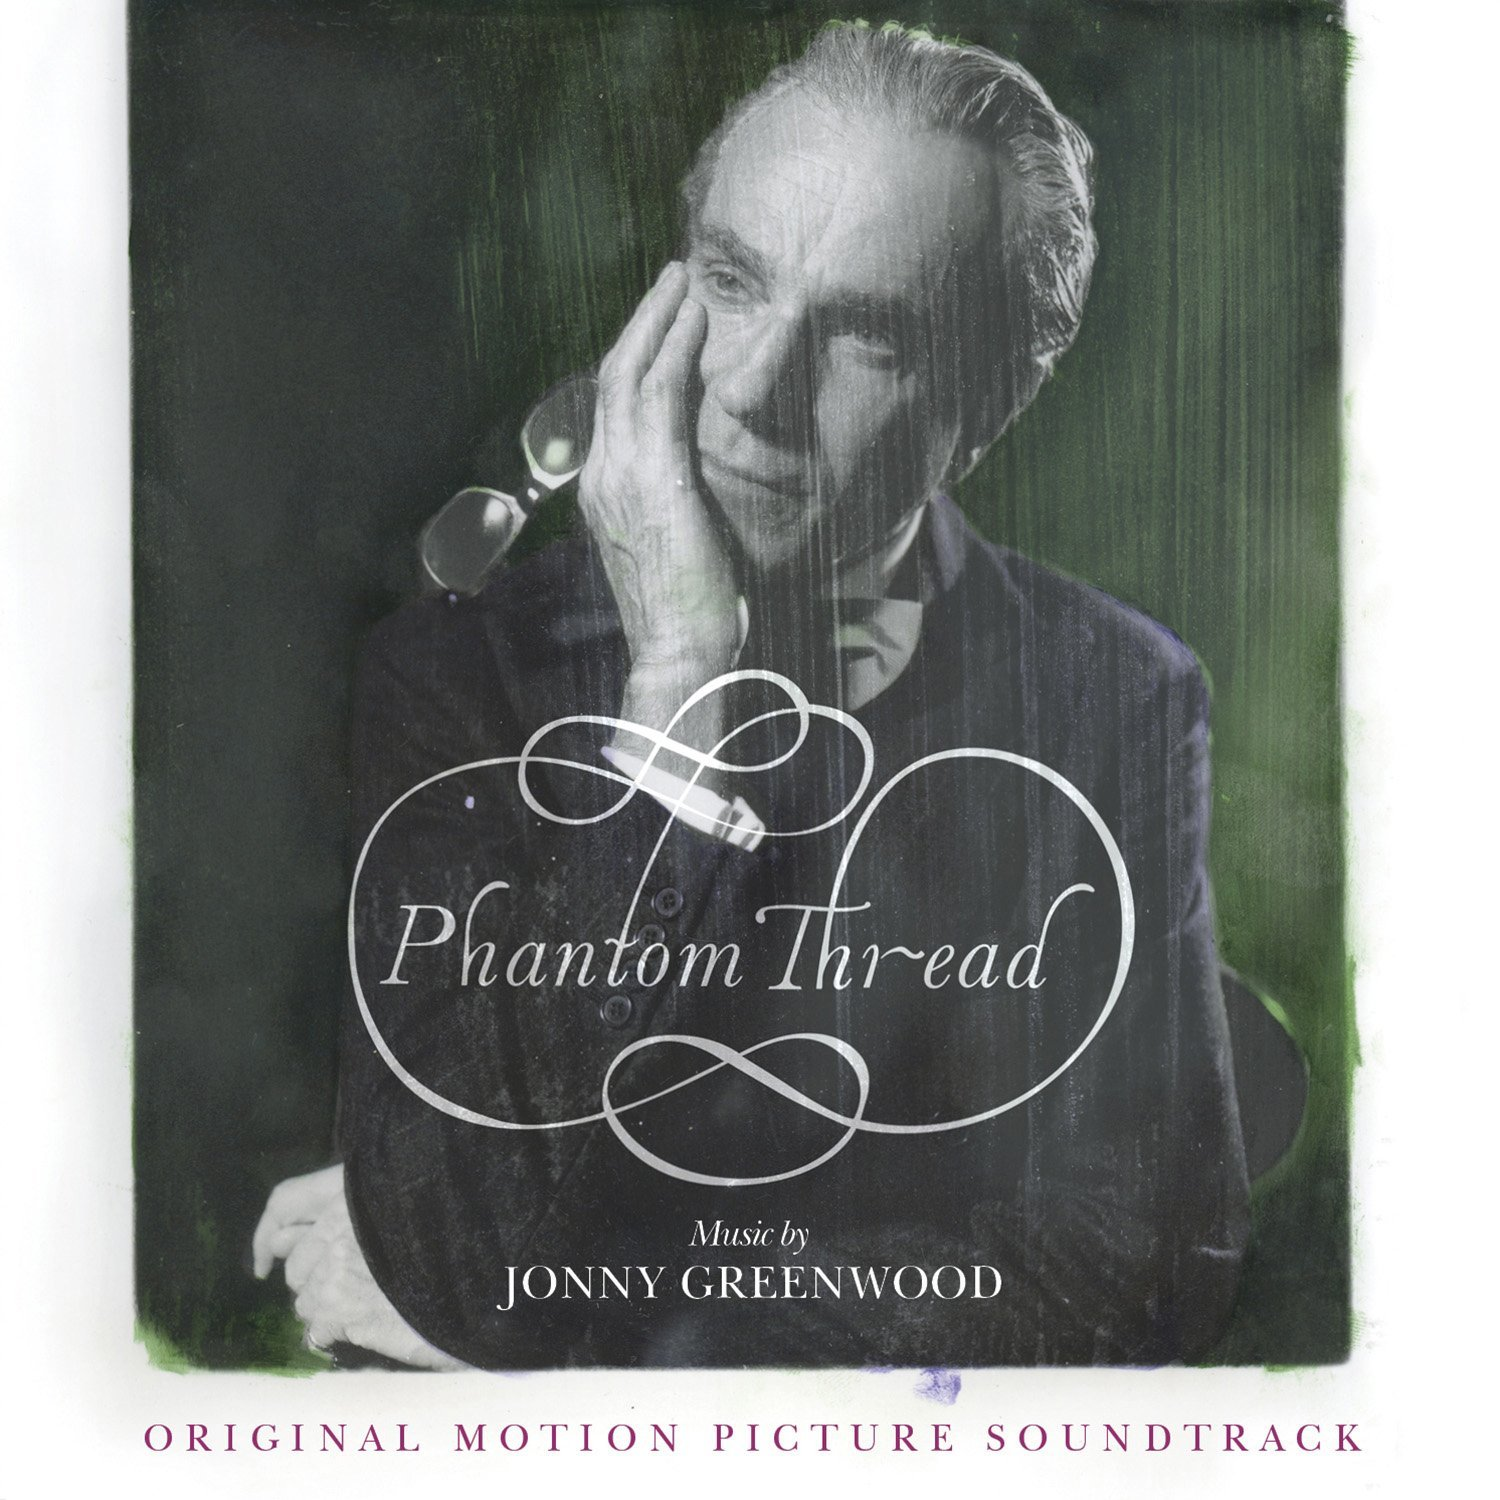 Jonny Greenwood - Phantom Thread [Soundtrack 2LP]